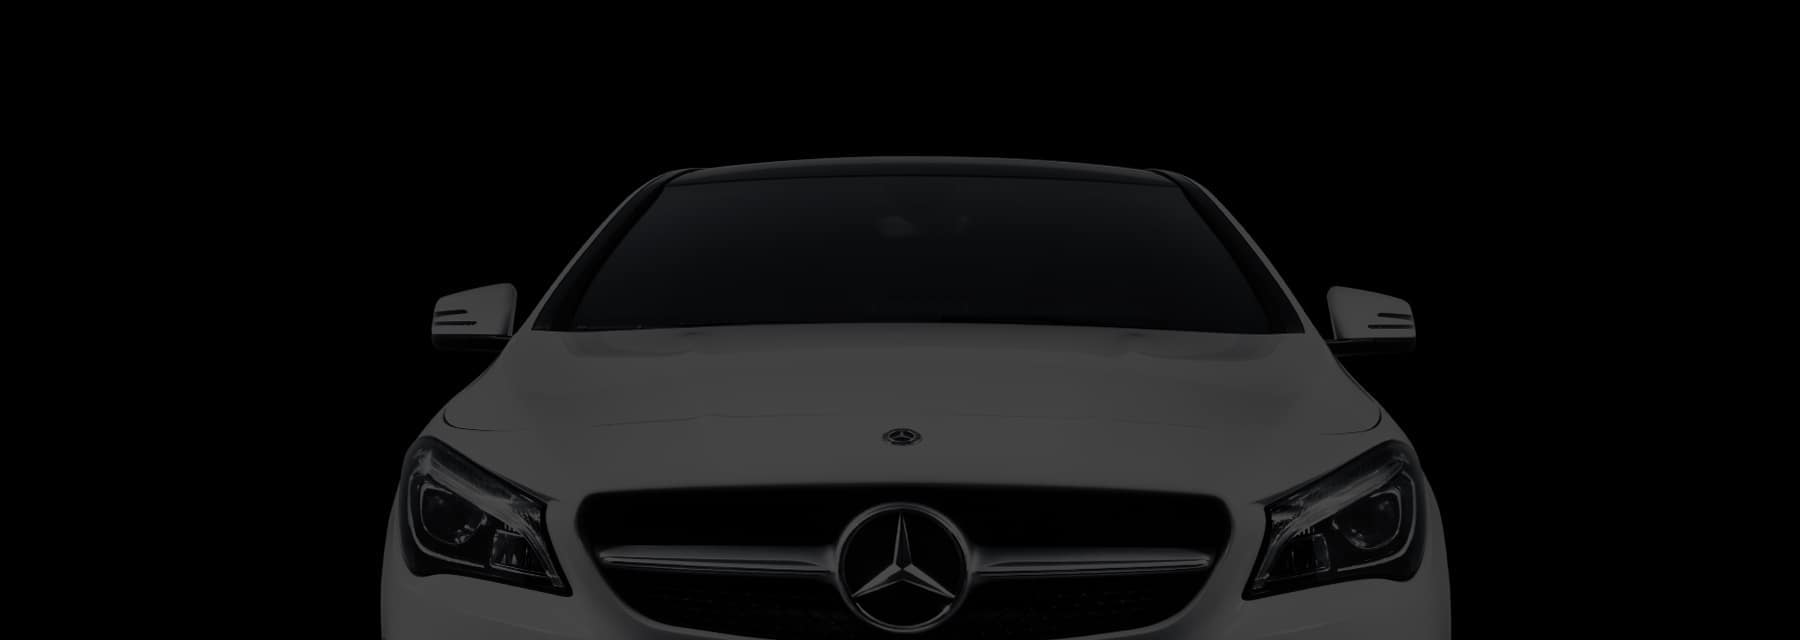 edmonton a amg on we of khans purchase mahfouz dari the congratulations dealer benz business tag appreciate to your mercedes from